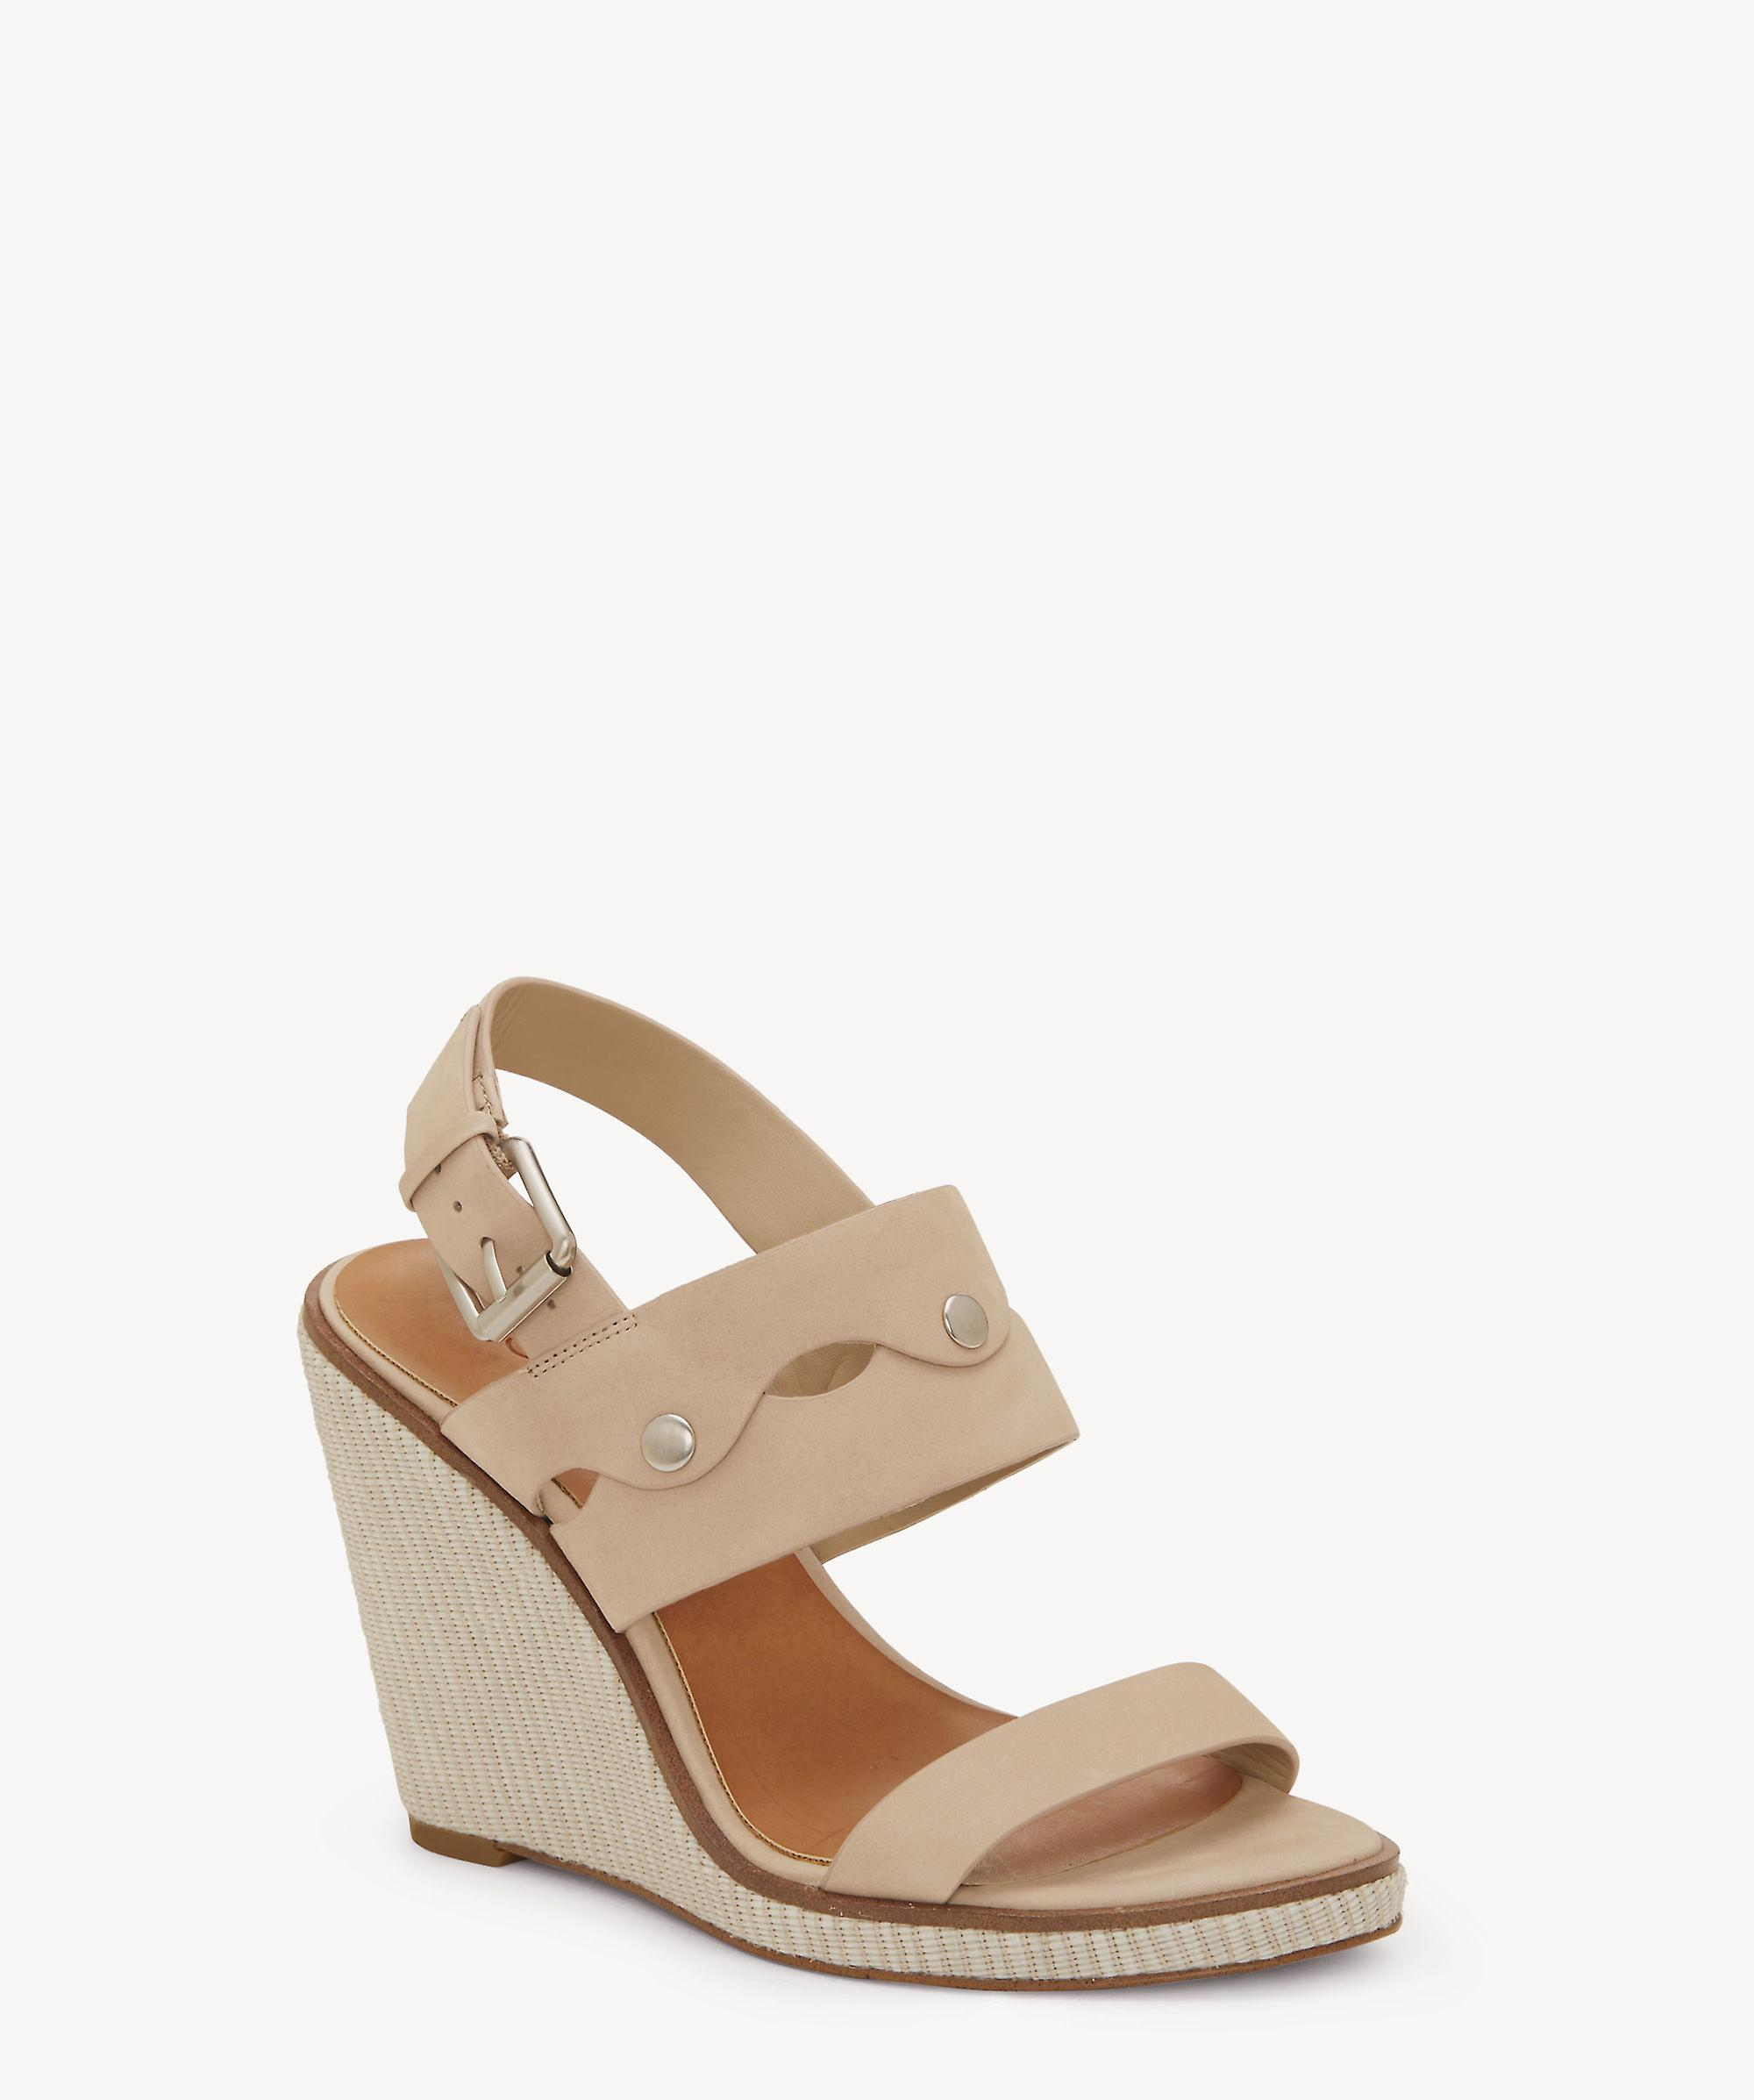 1. State Womens 1S Gizela Leather Open Toe Casual Espadrille Sandals